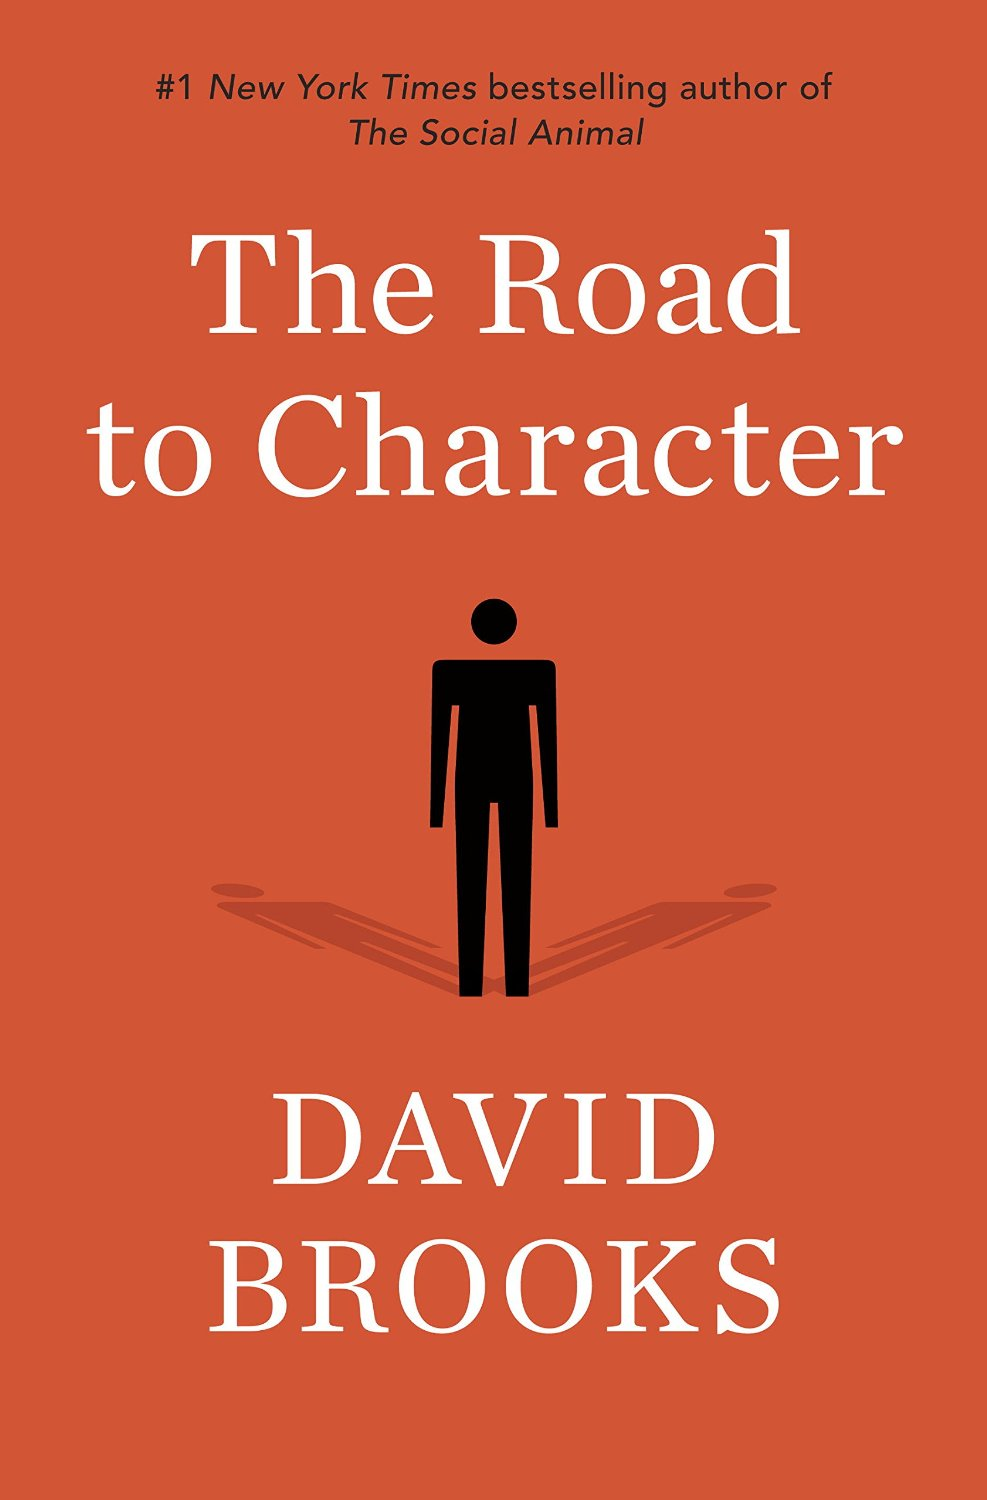 "The Road to Character: David Brooks on the Art of Stumbling, ""Résumé Virtues"" vs. ""Eulogy Virtues,"" and the Humility Code of Living a Meaningful Life"